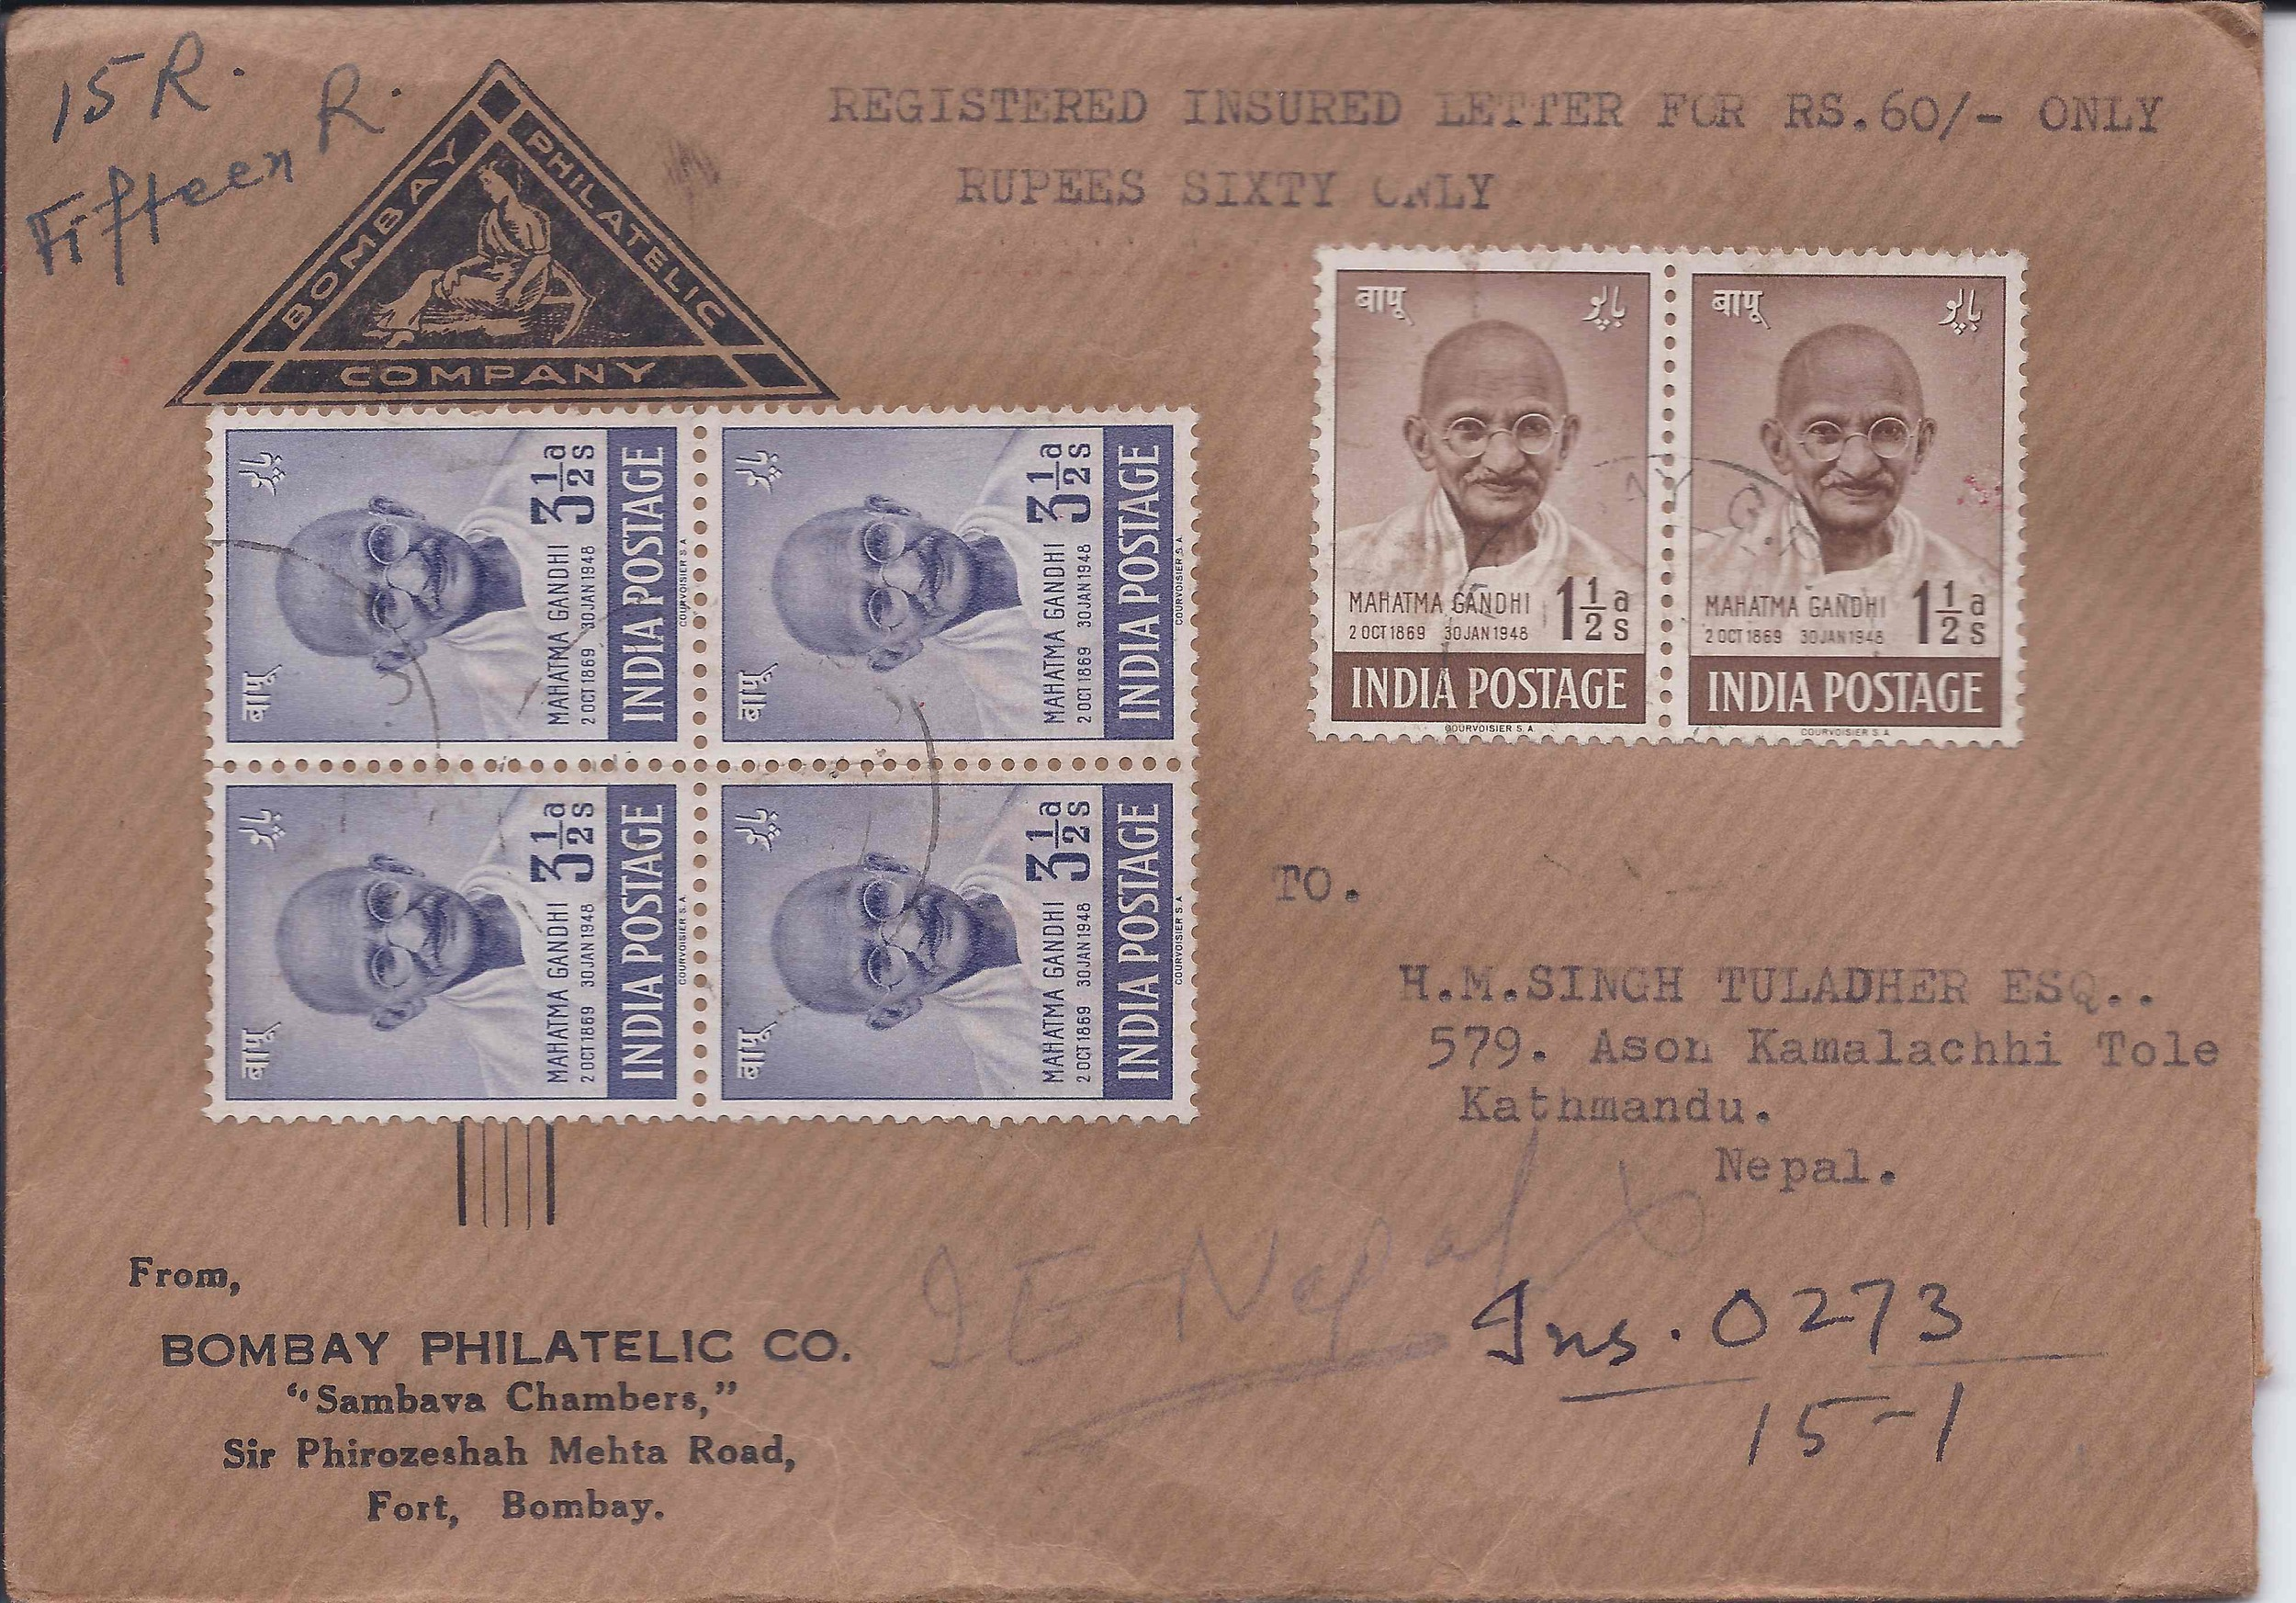 """3 x 1A and 2 x 3PS King George VI and 4 x 3½ Anna Gandhi, bearing """"Indian Embassy Nepal - 19 Nov 48"""" cancel, sent from Nepal to USA via """"Air Mail""""."""